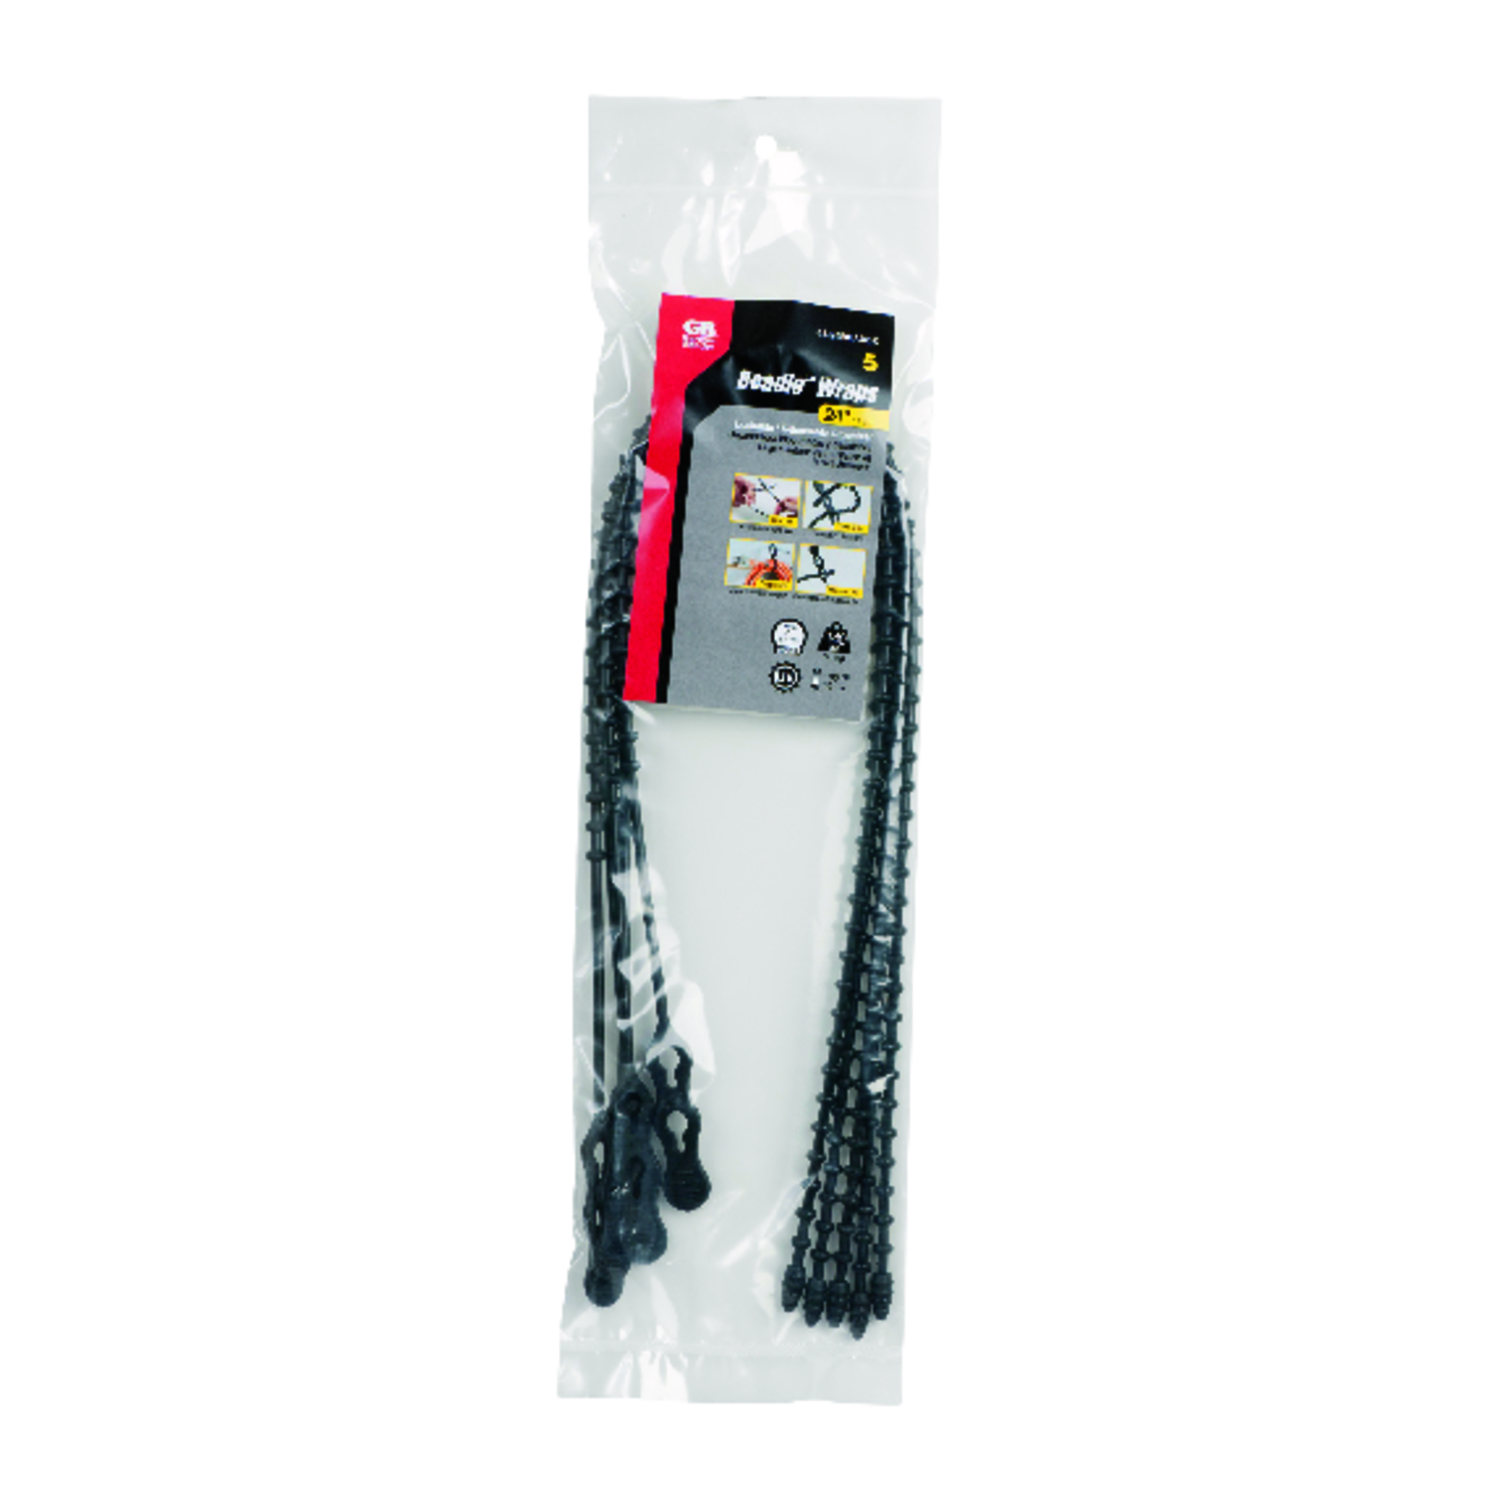 Gardner Bender  Beadle Wrap  24 in. L Black  Beaded Cable Tie  5 pk